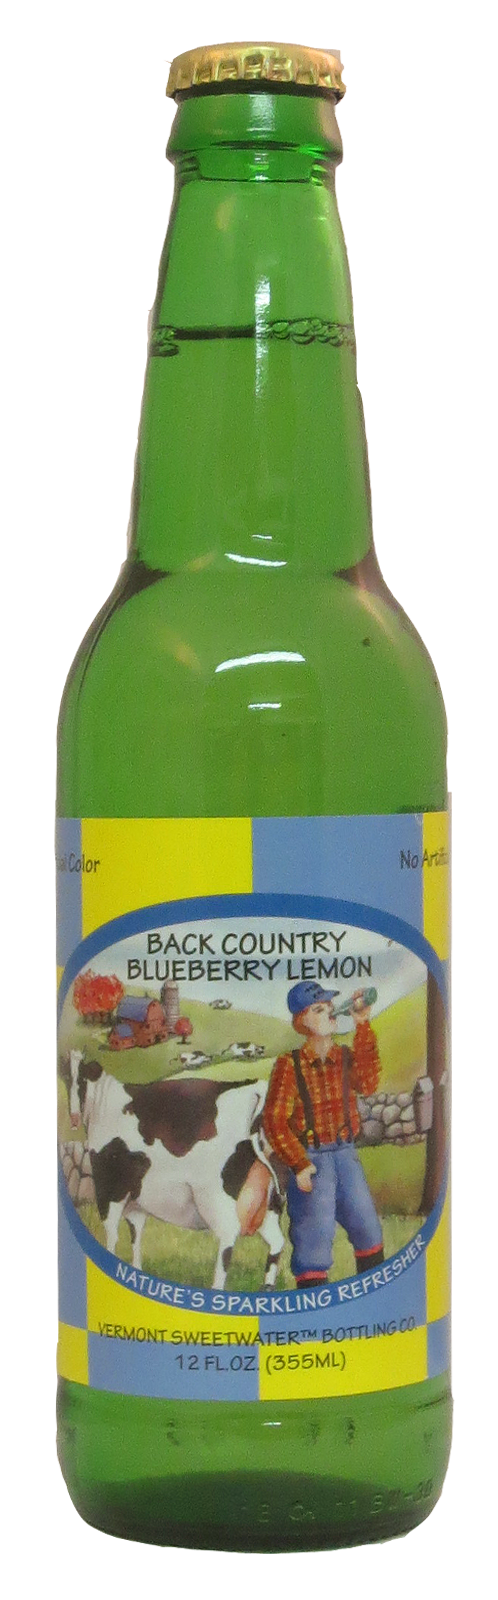 Vermont Sweetwater Backcountry Blueberry Lemon